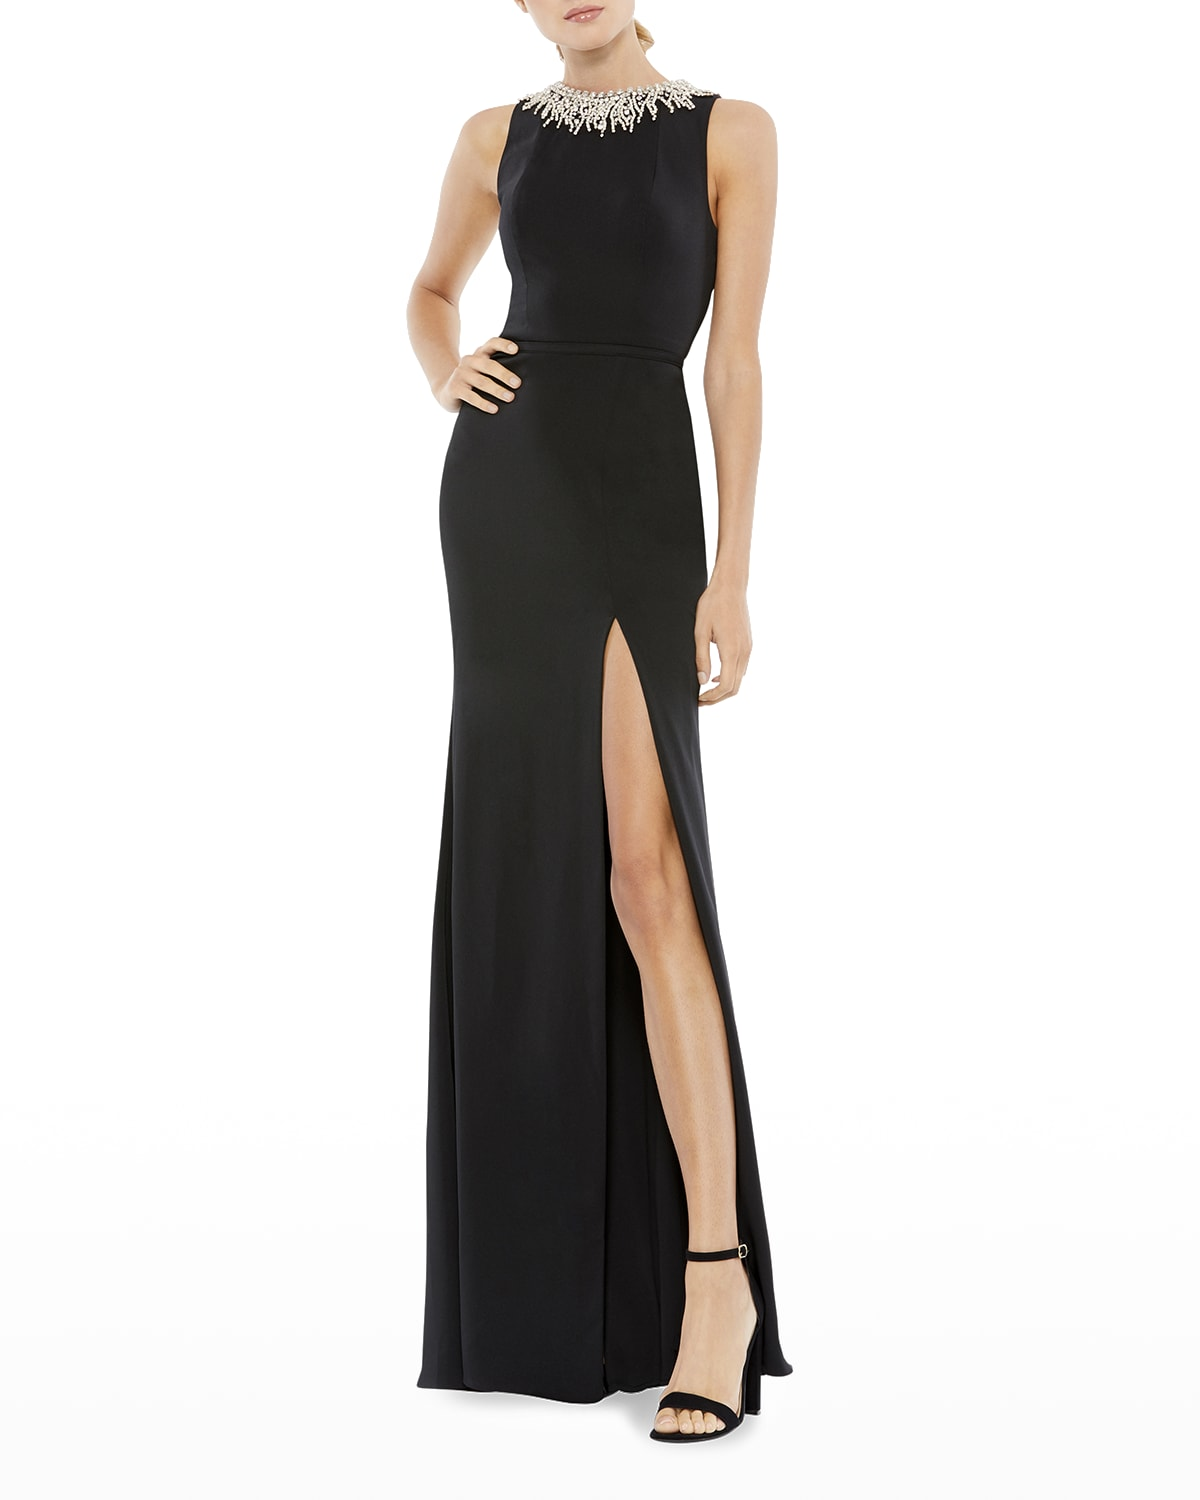 Bejeweled-Neck Column Gown